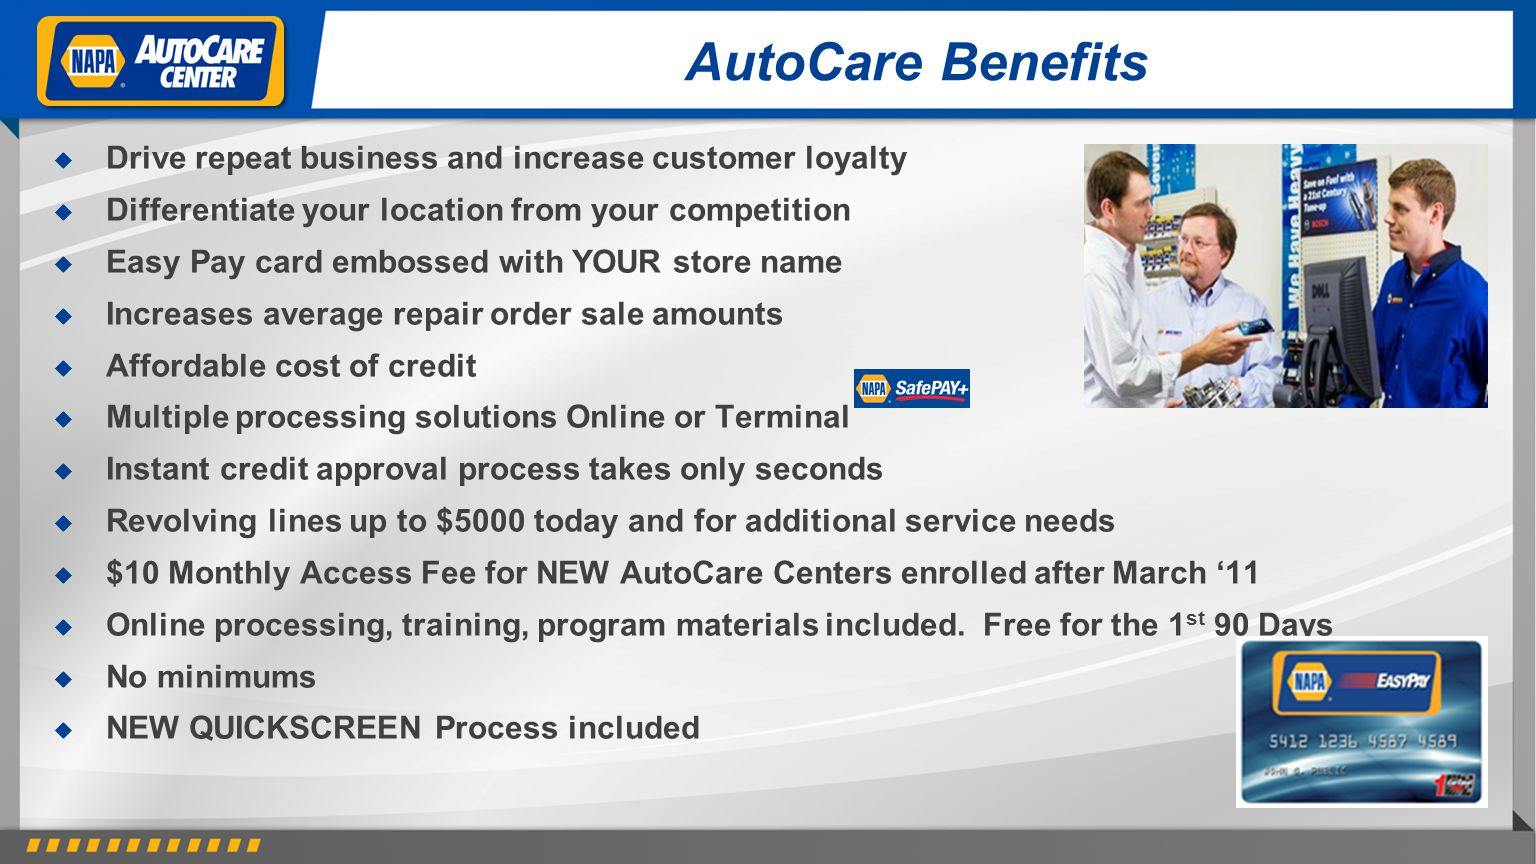 AutoCare Benefits Drive repeat business and increase customer loyalty